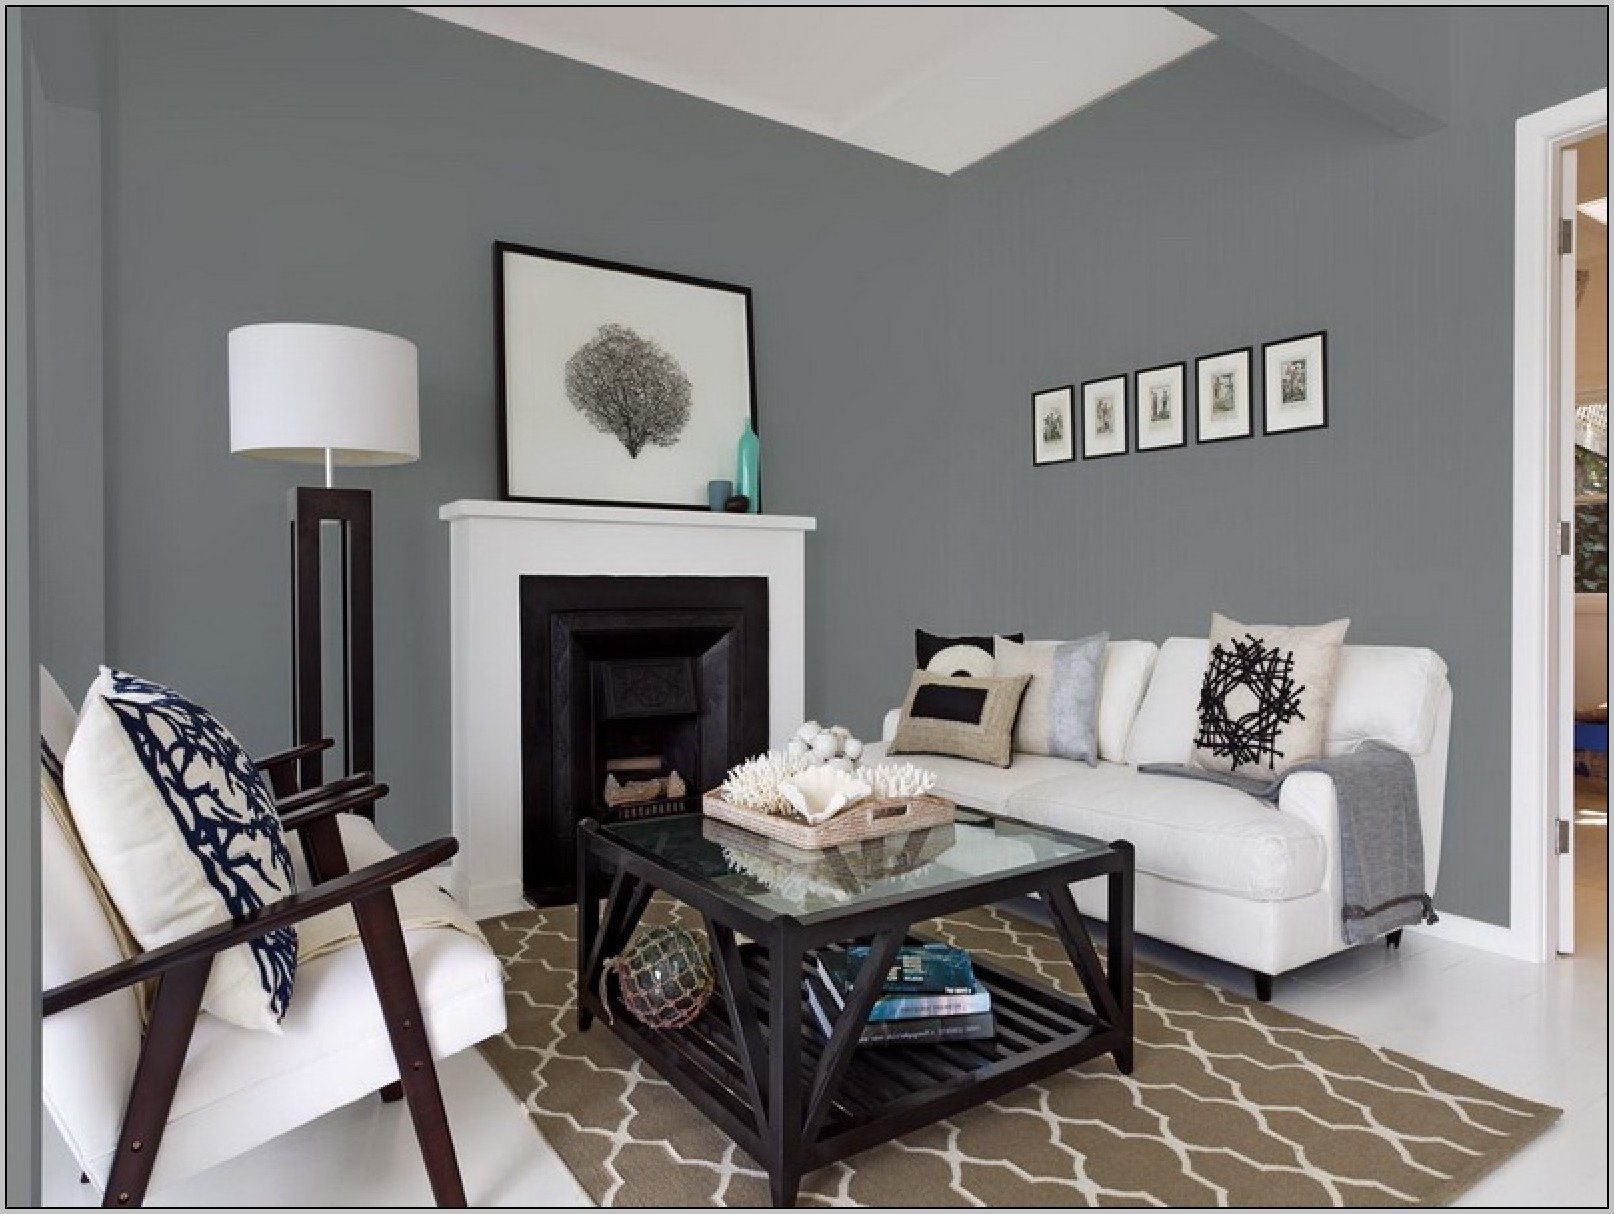 10 Most Popular Living Room Paint Colors Ideas latest paint colors for living room living room colors 2017 wall 2021